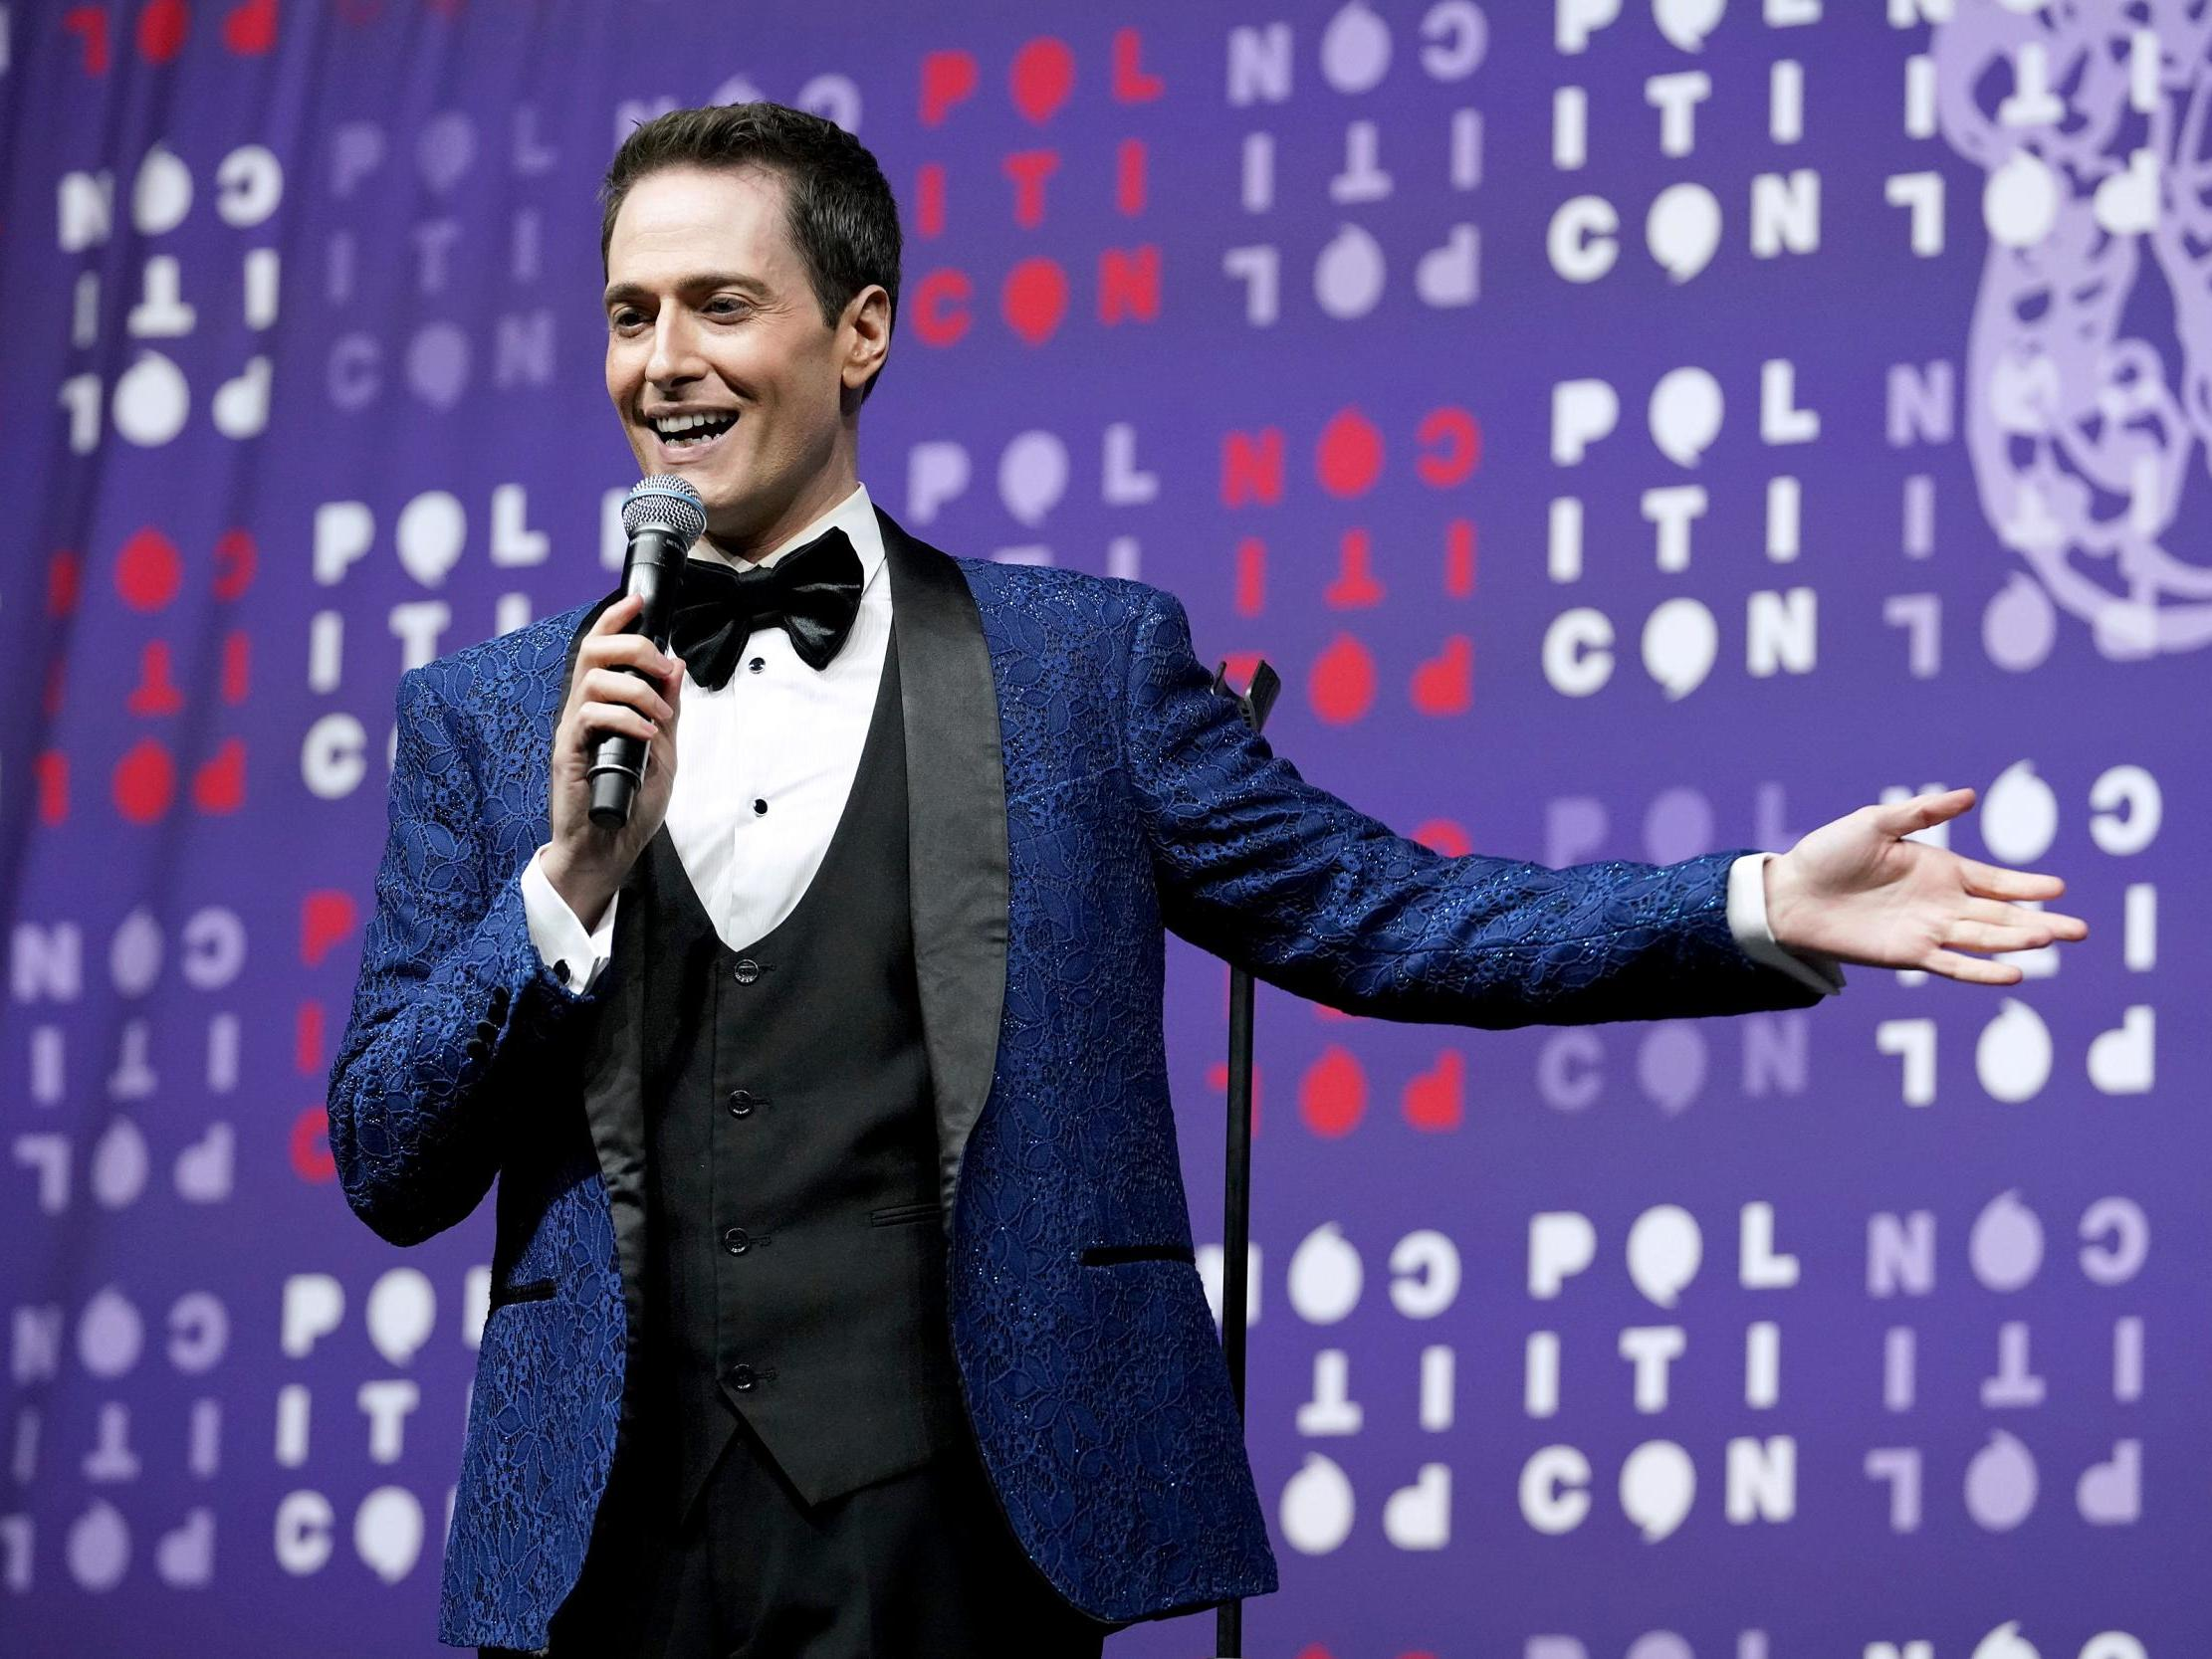 Comedian Randy Rainbow apologises for resurfaced racist and transphobic tweets   The Independent   The Independent